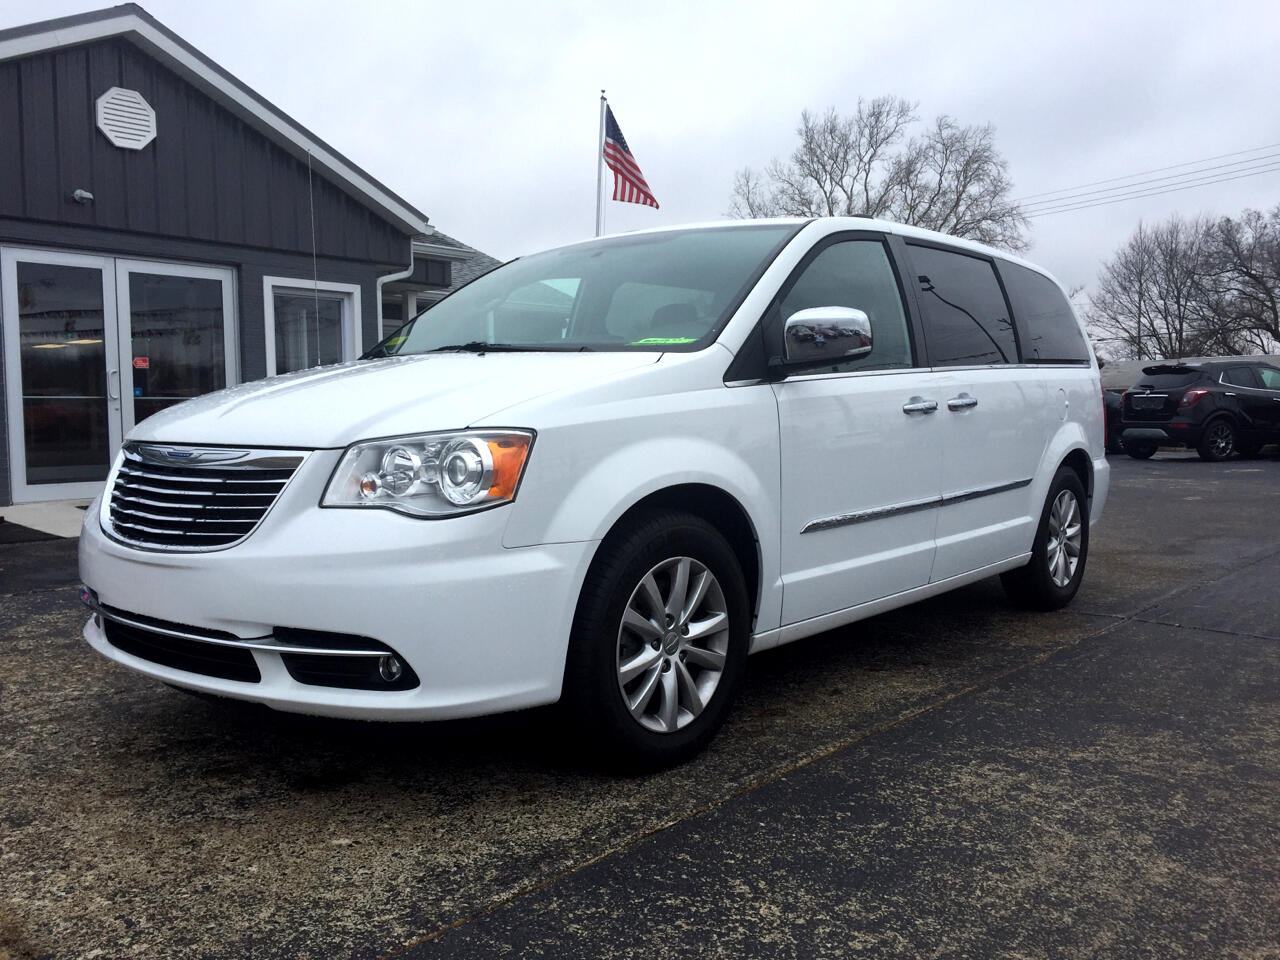 2016 Chrysler Town & Country 4dr Wgn Limited Platinum